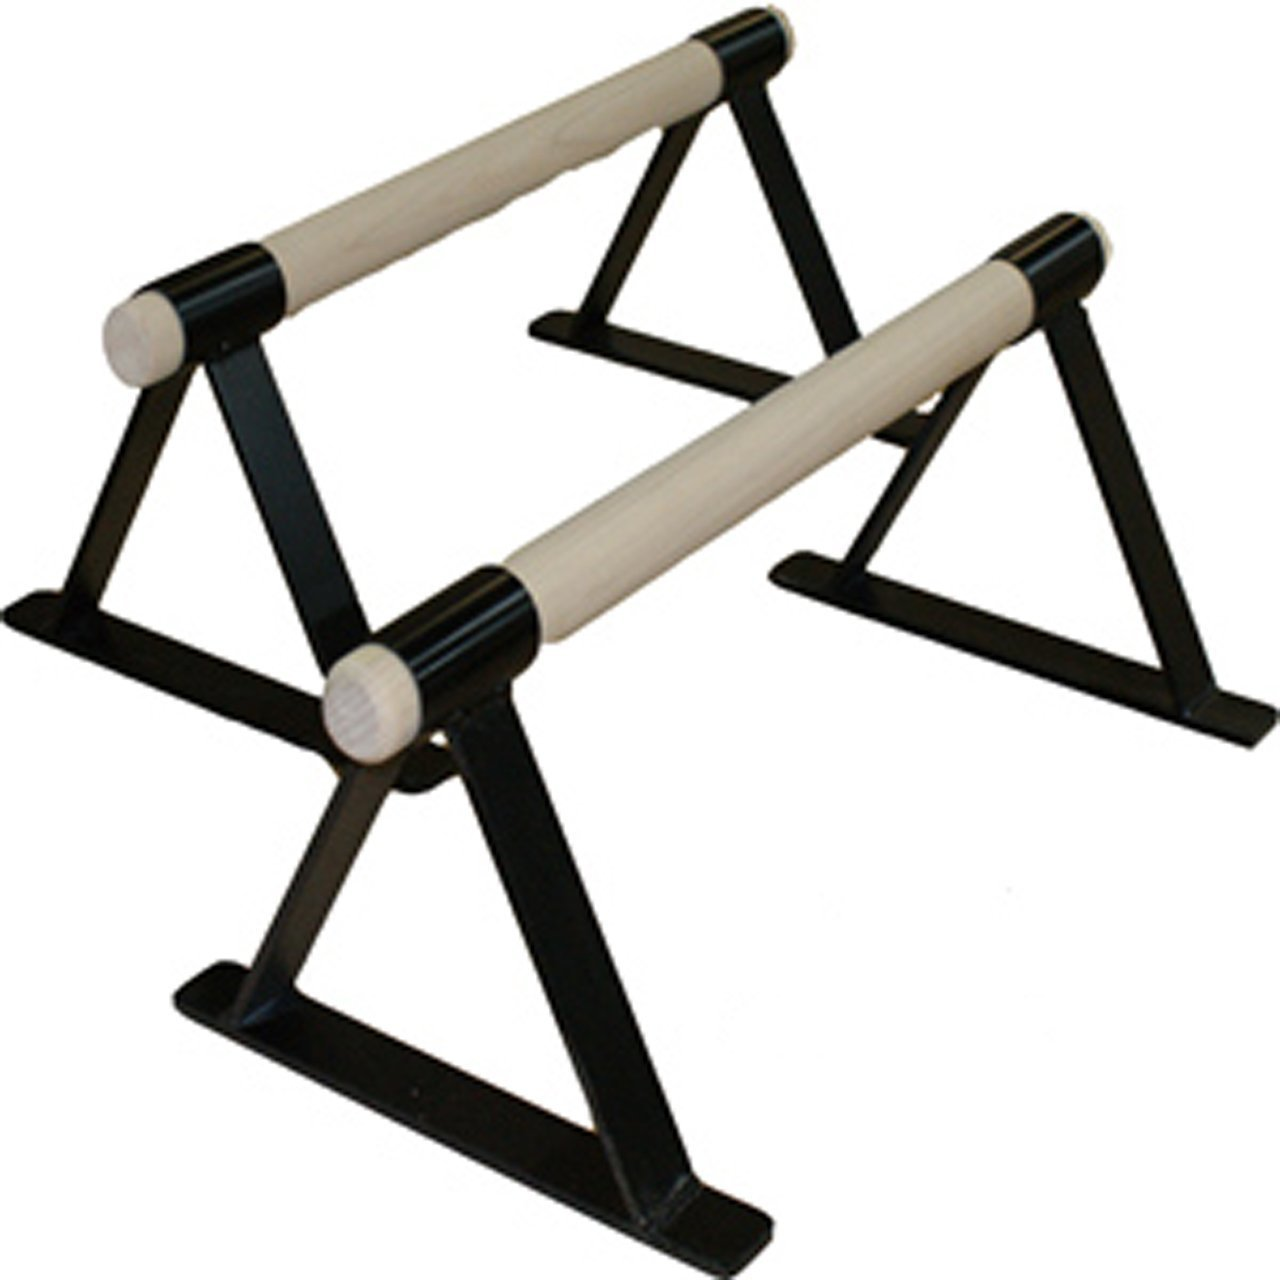 24'' Parallettes (Set of 2) by The Beam Store